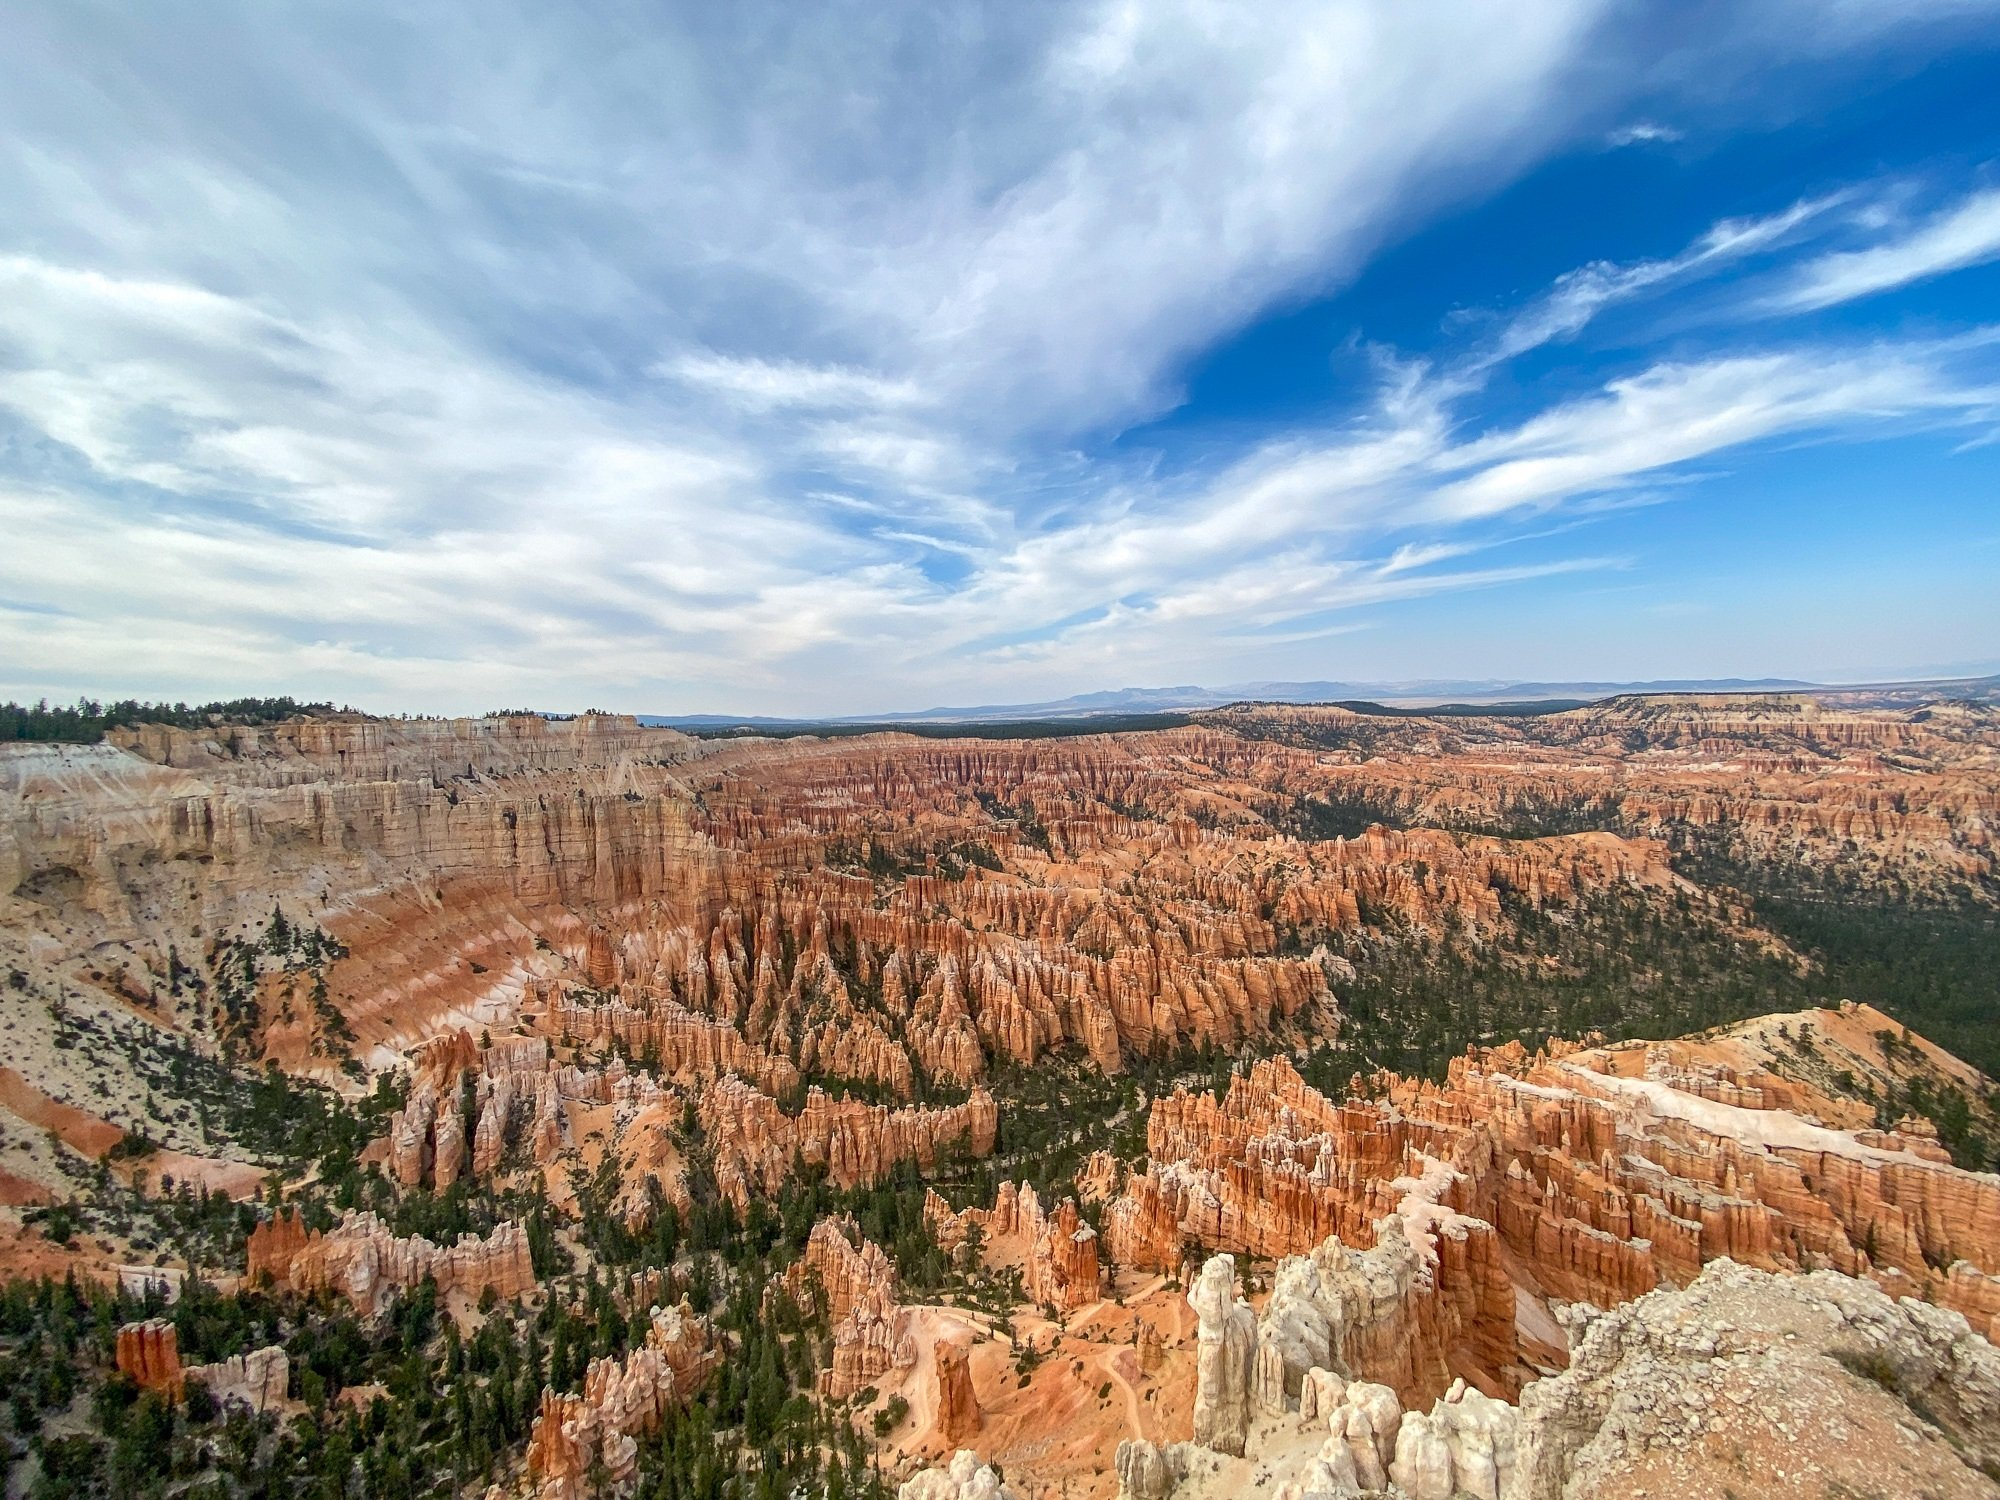 Bryce Amphitheater as seen from Sunset Point in Bryce Canyon National Park